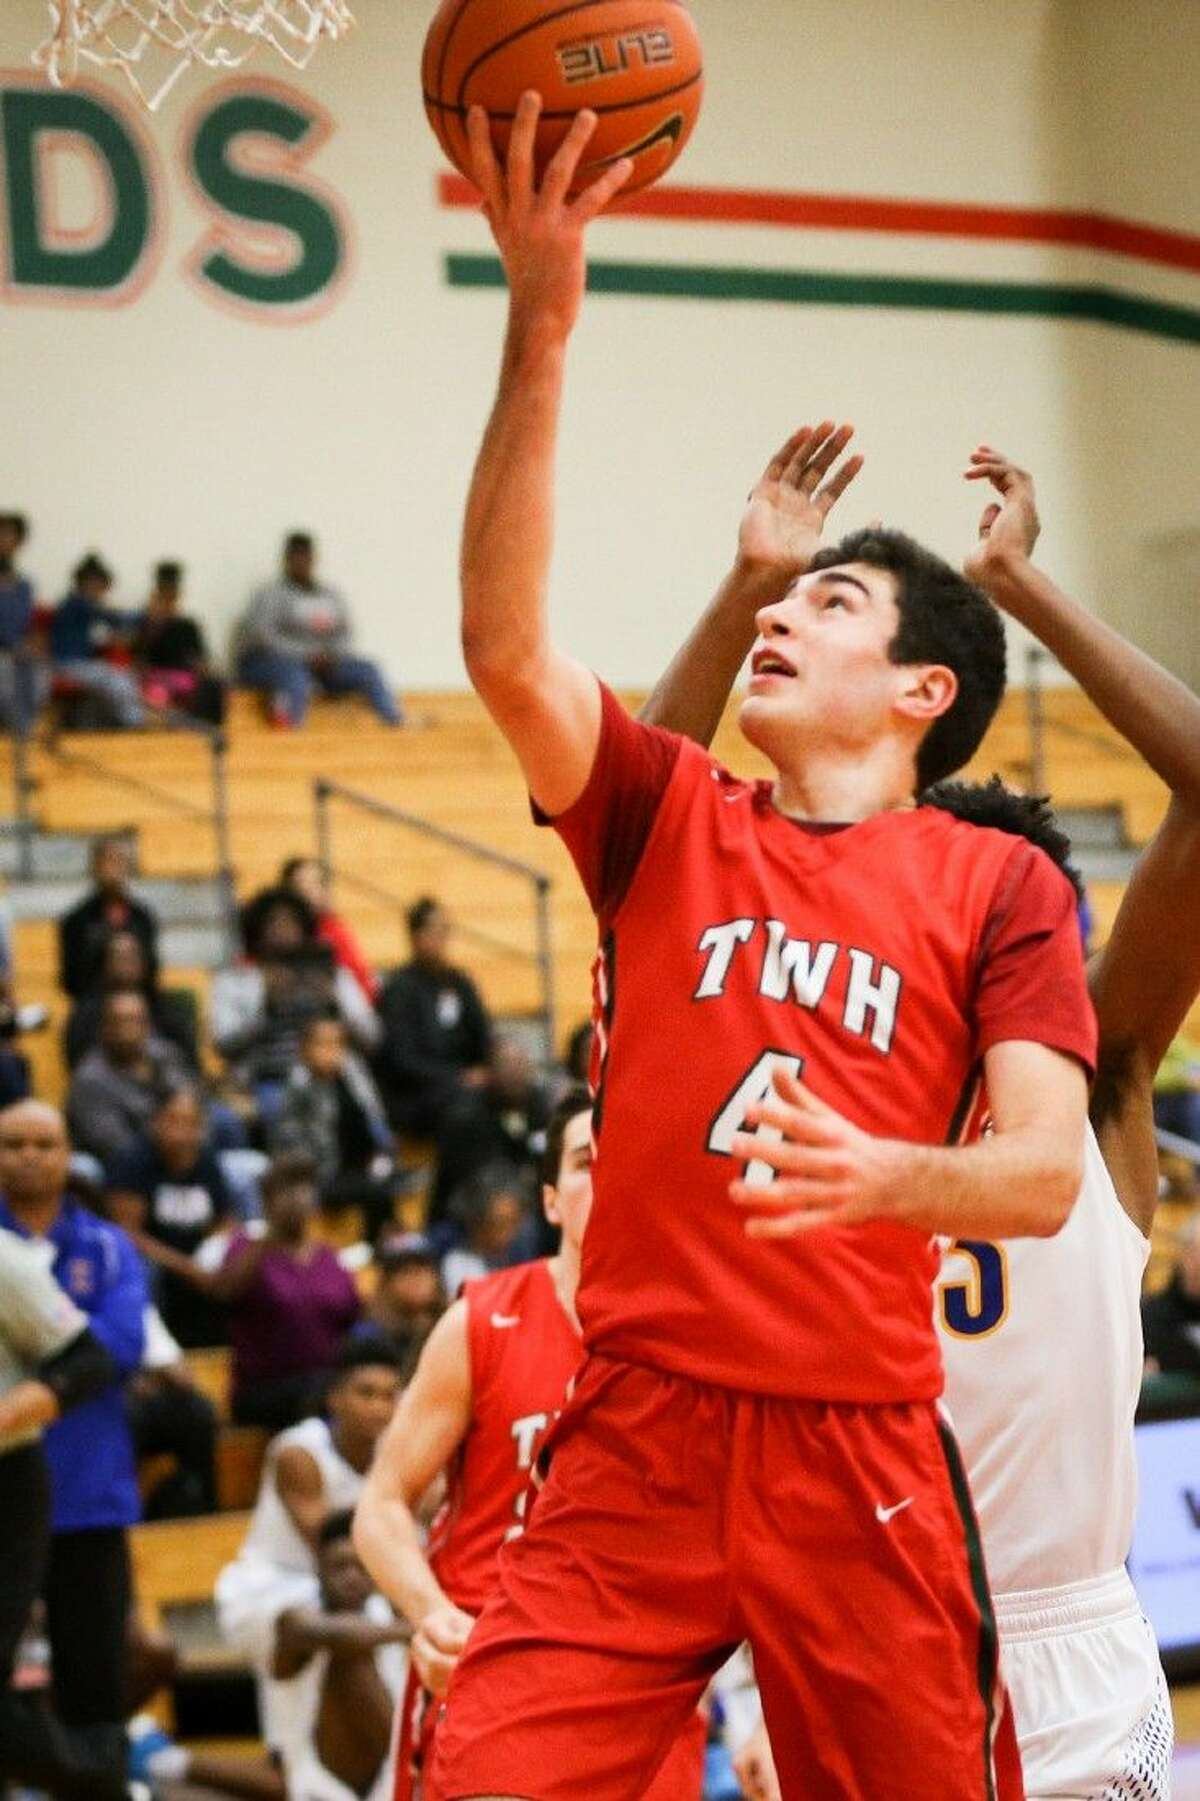 The Woodlands' Kyle Spears (4) goes for a layup during a high school boys basketball game against Fort Bend Elkins this past Saturday night.